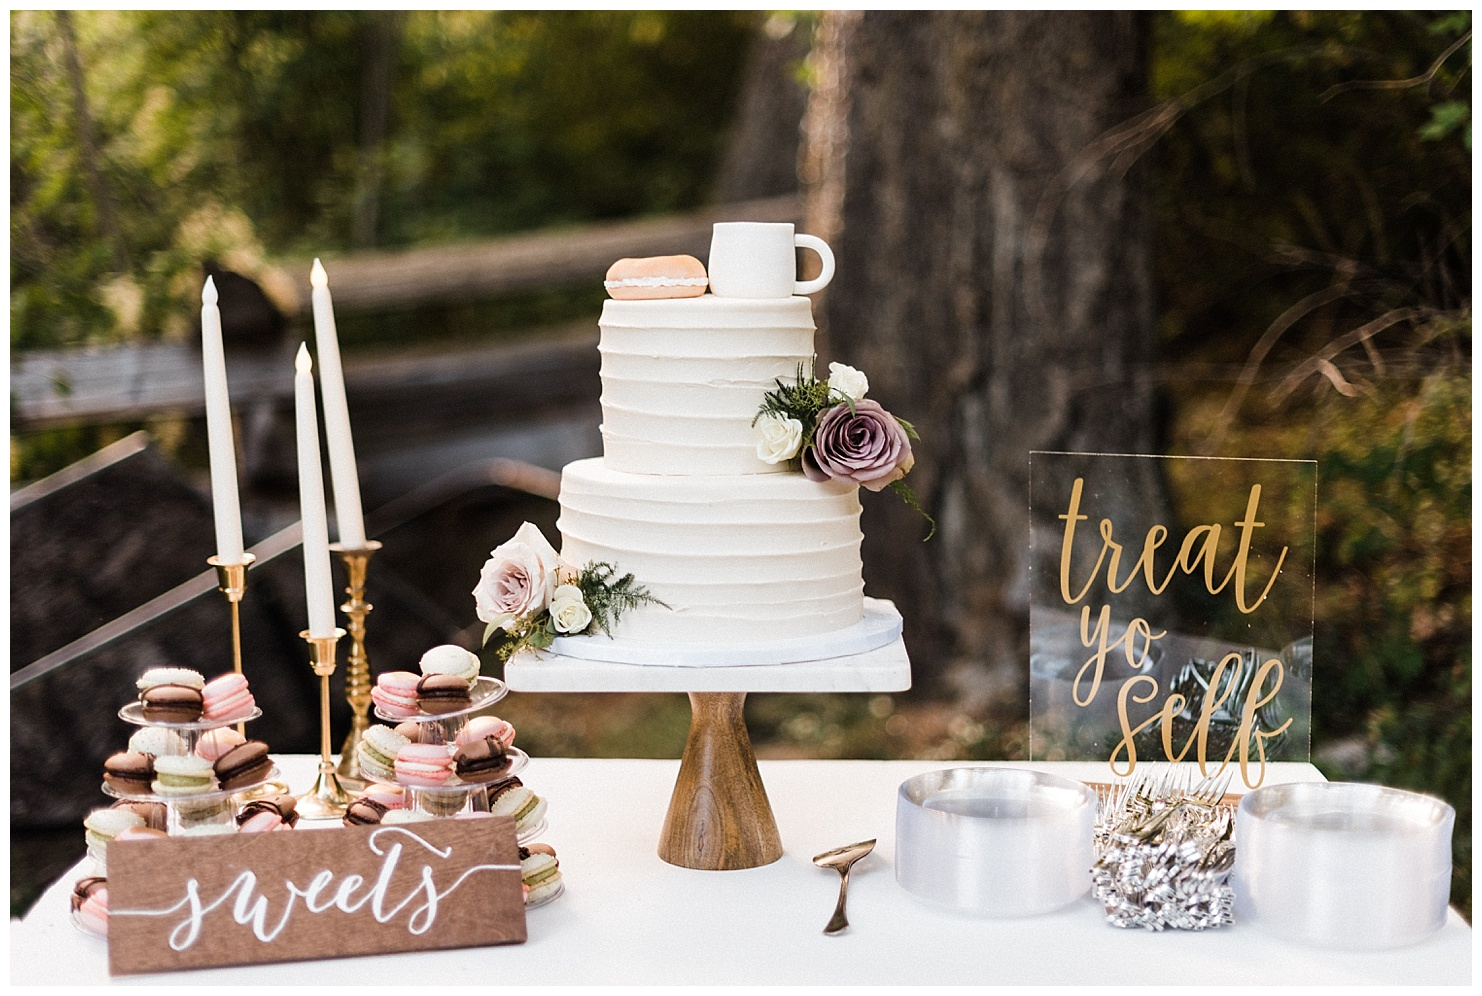 Reception details at a Lake Coeur d'Alene Wedding by Forthright Photo